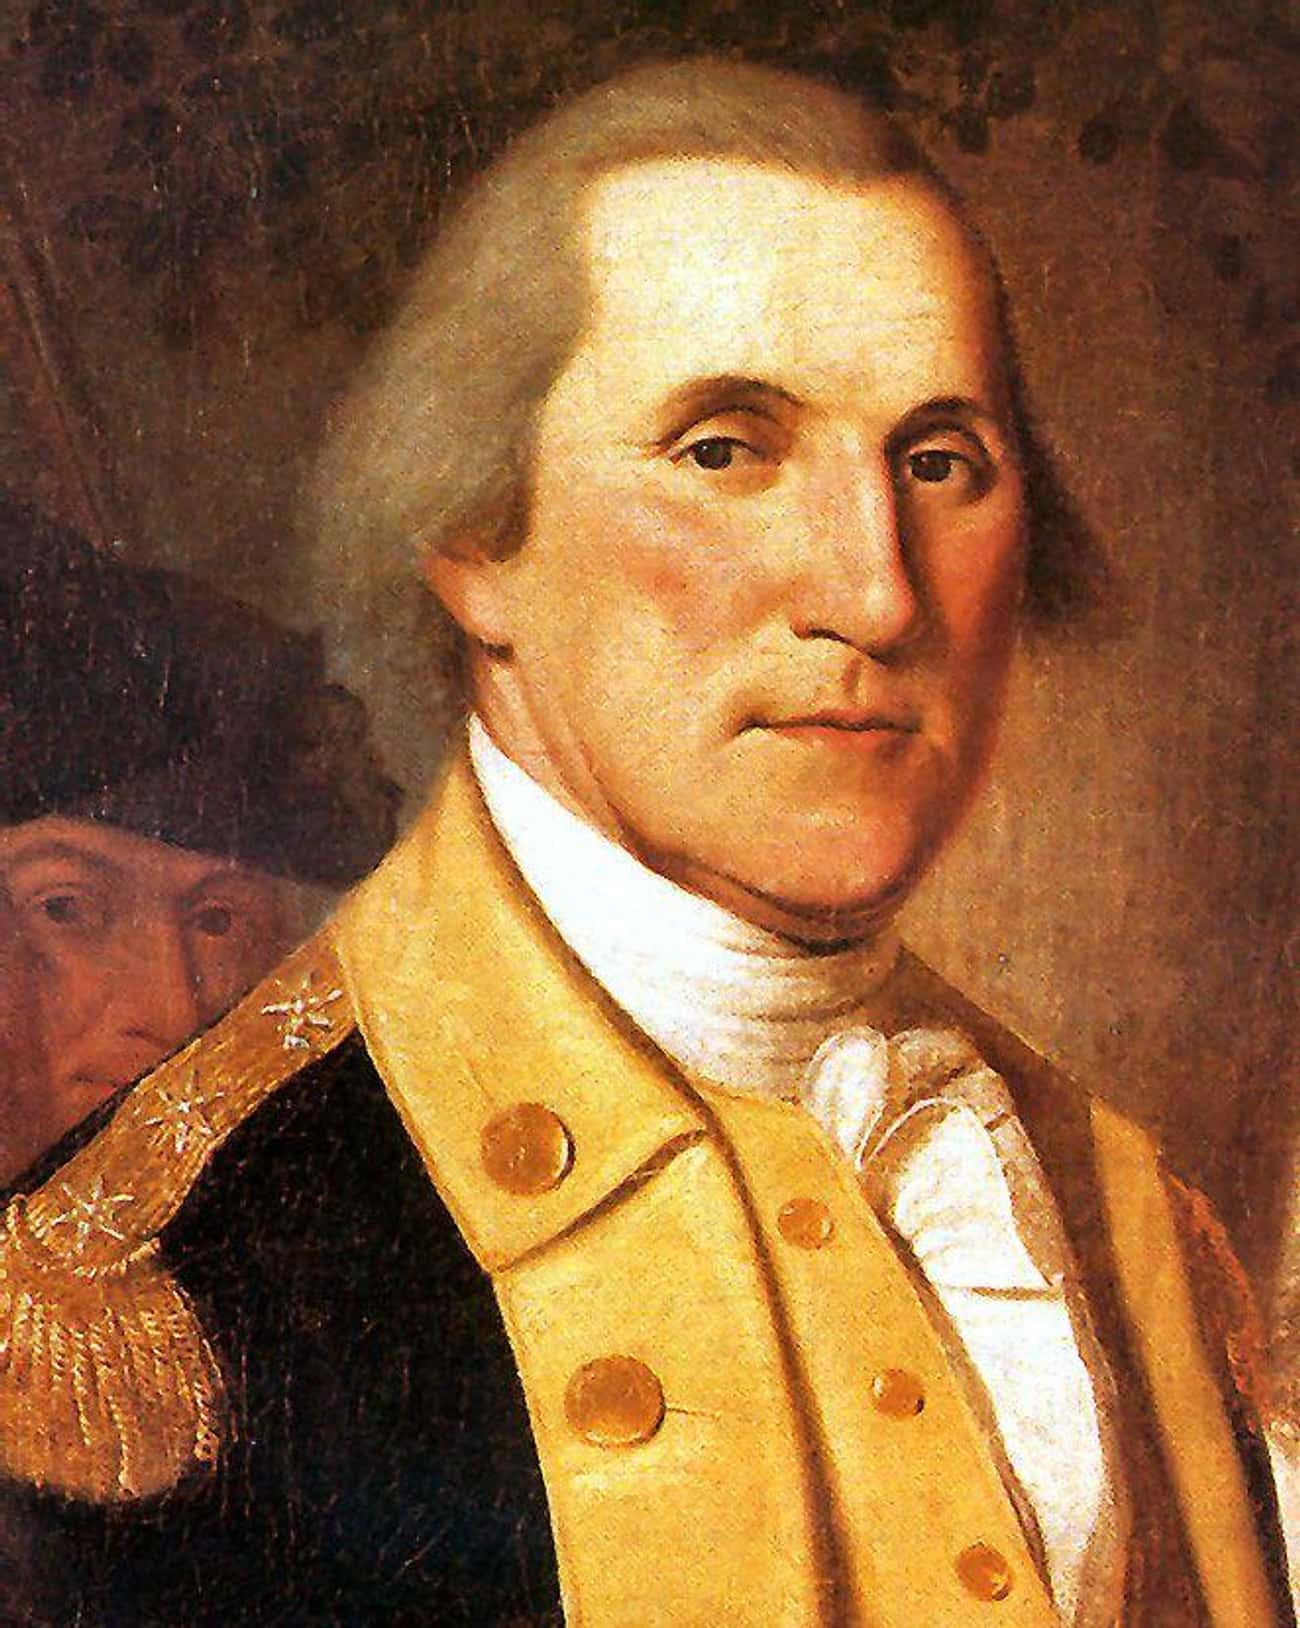 George Washington Had Sliced T is listed (or ranked) 1 on the list Weird And Disgusting Foods The Founding Fathers Ate